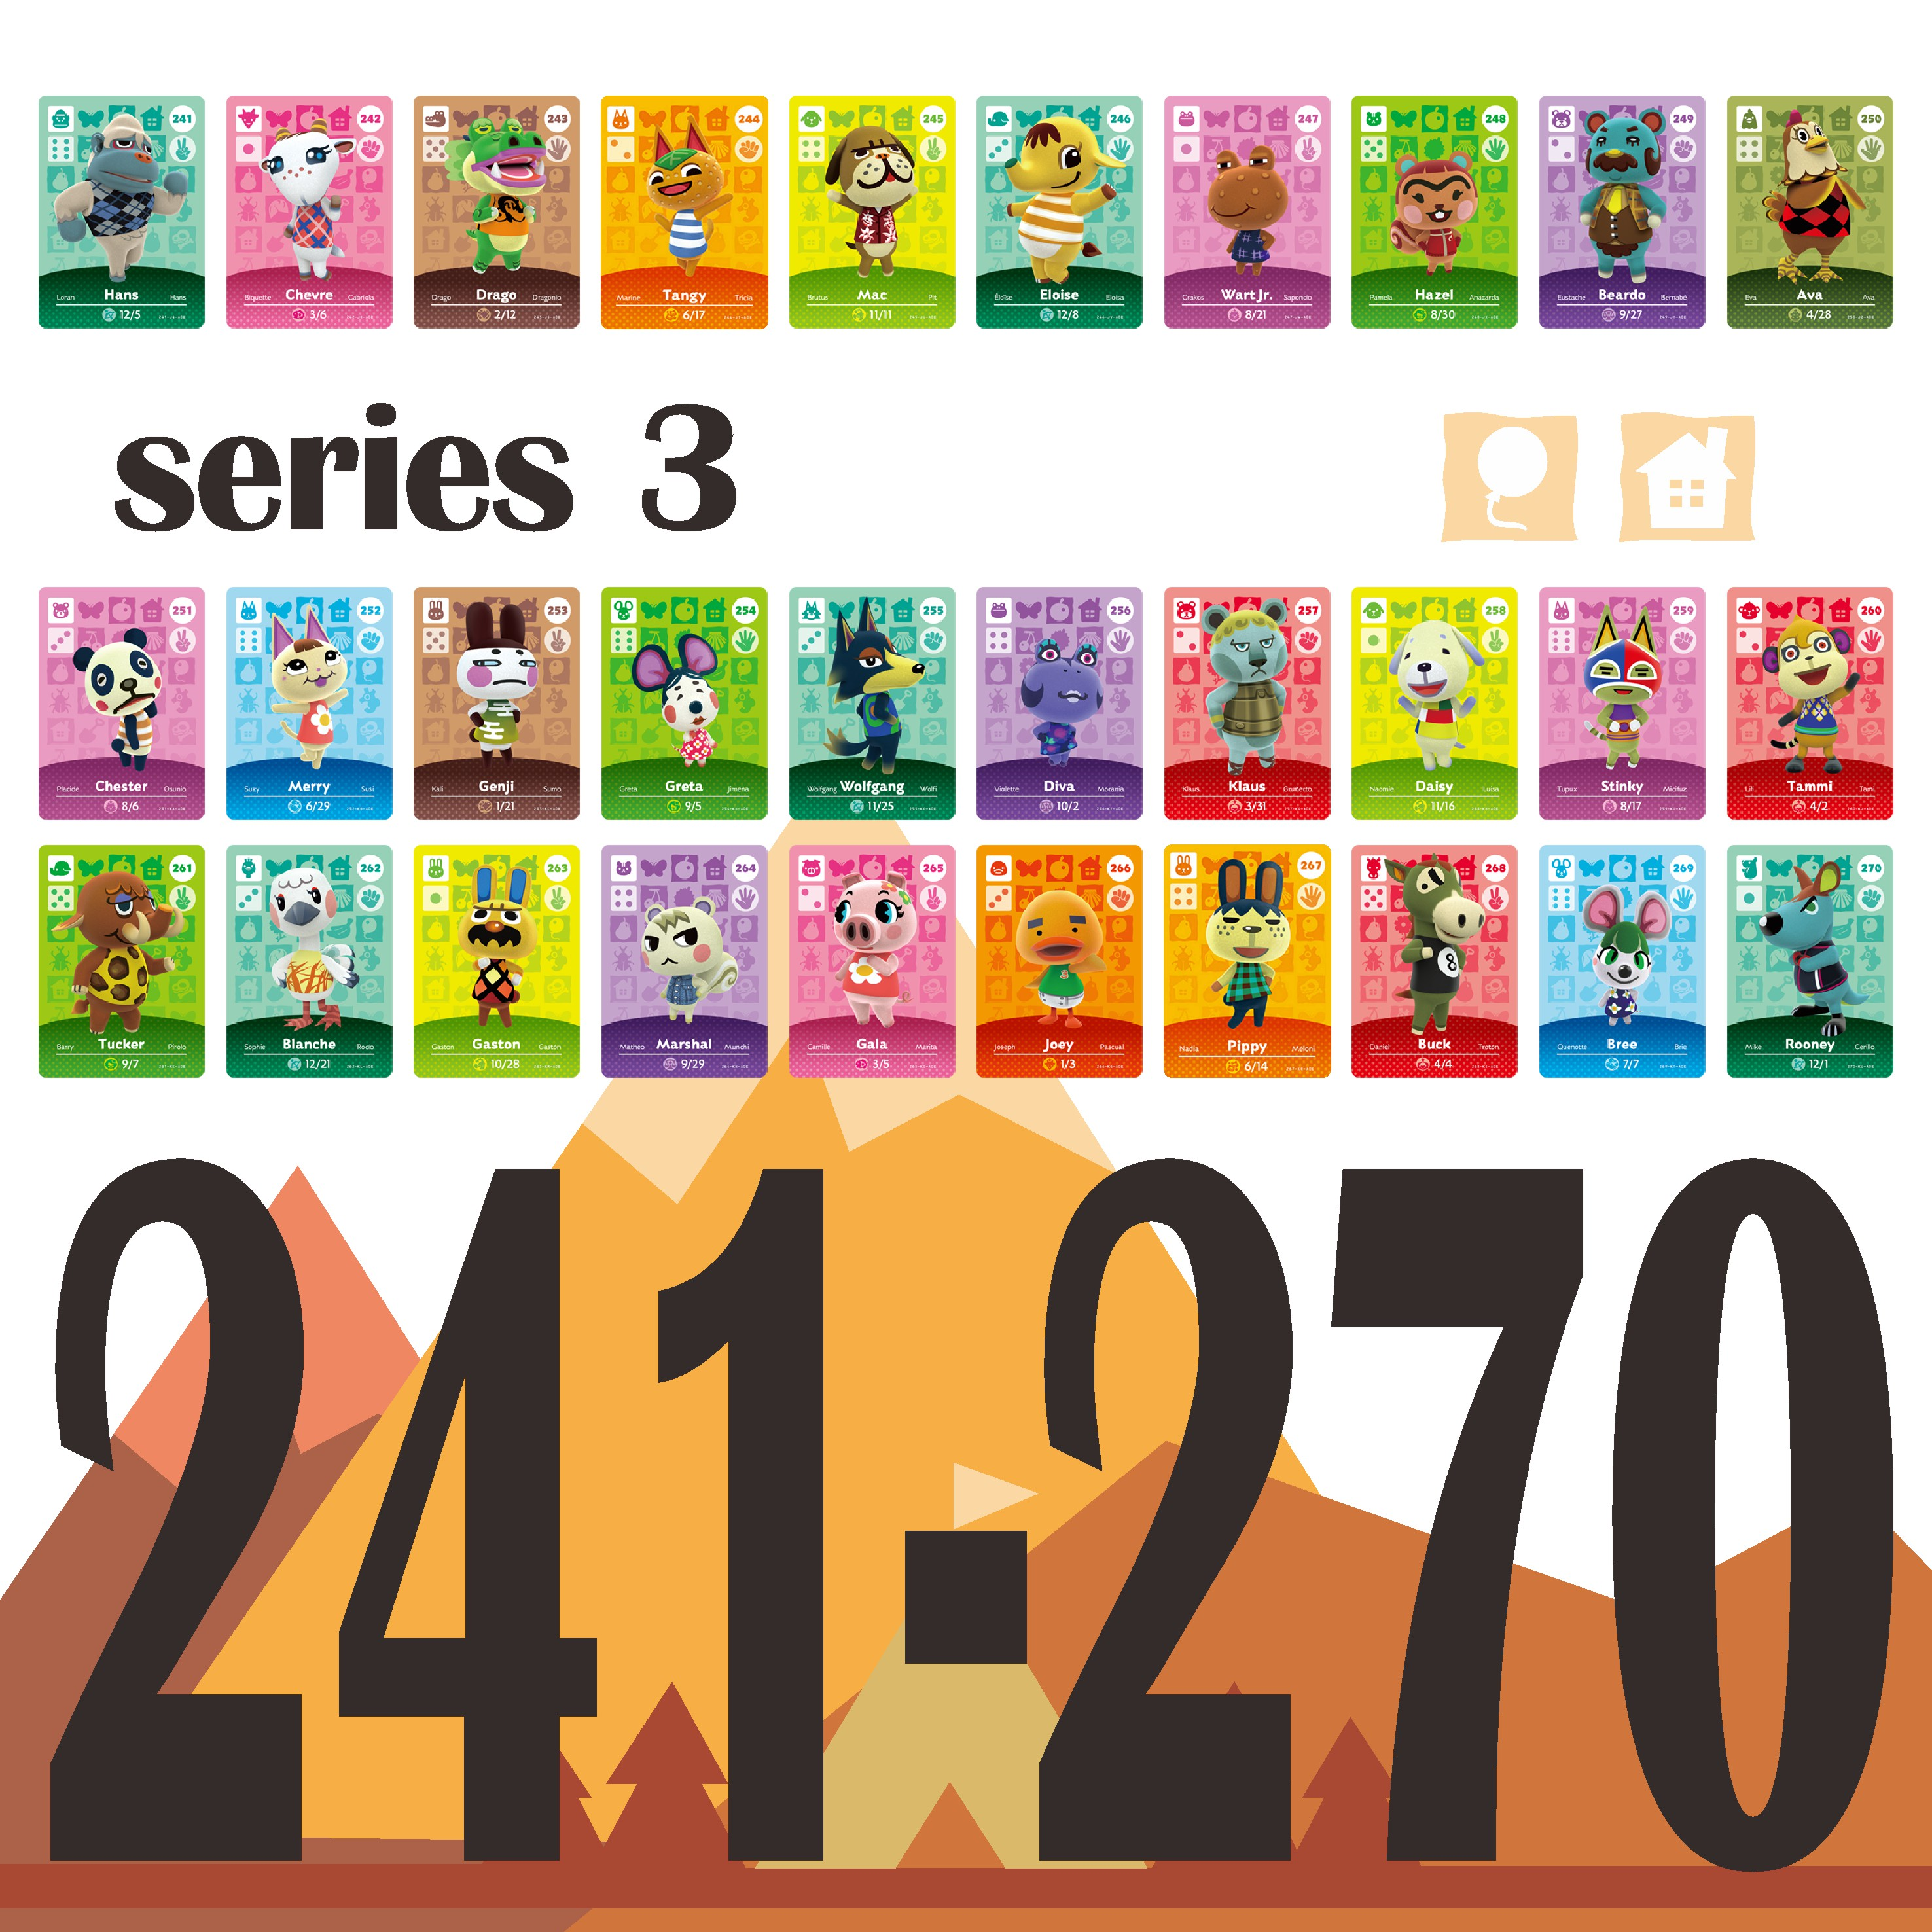 241-270 Animal Crossing Amiibo Game Crooss Card Series Set Season 3 Animal Crossing Card Amiibo Card Work for Ns Games Ntag215 1